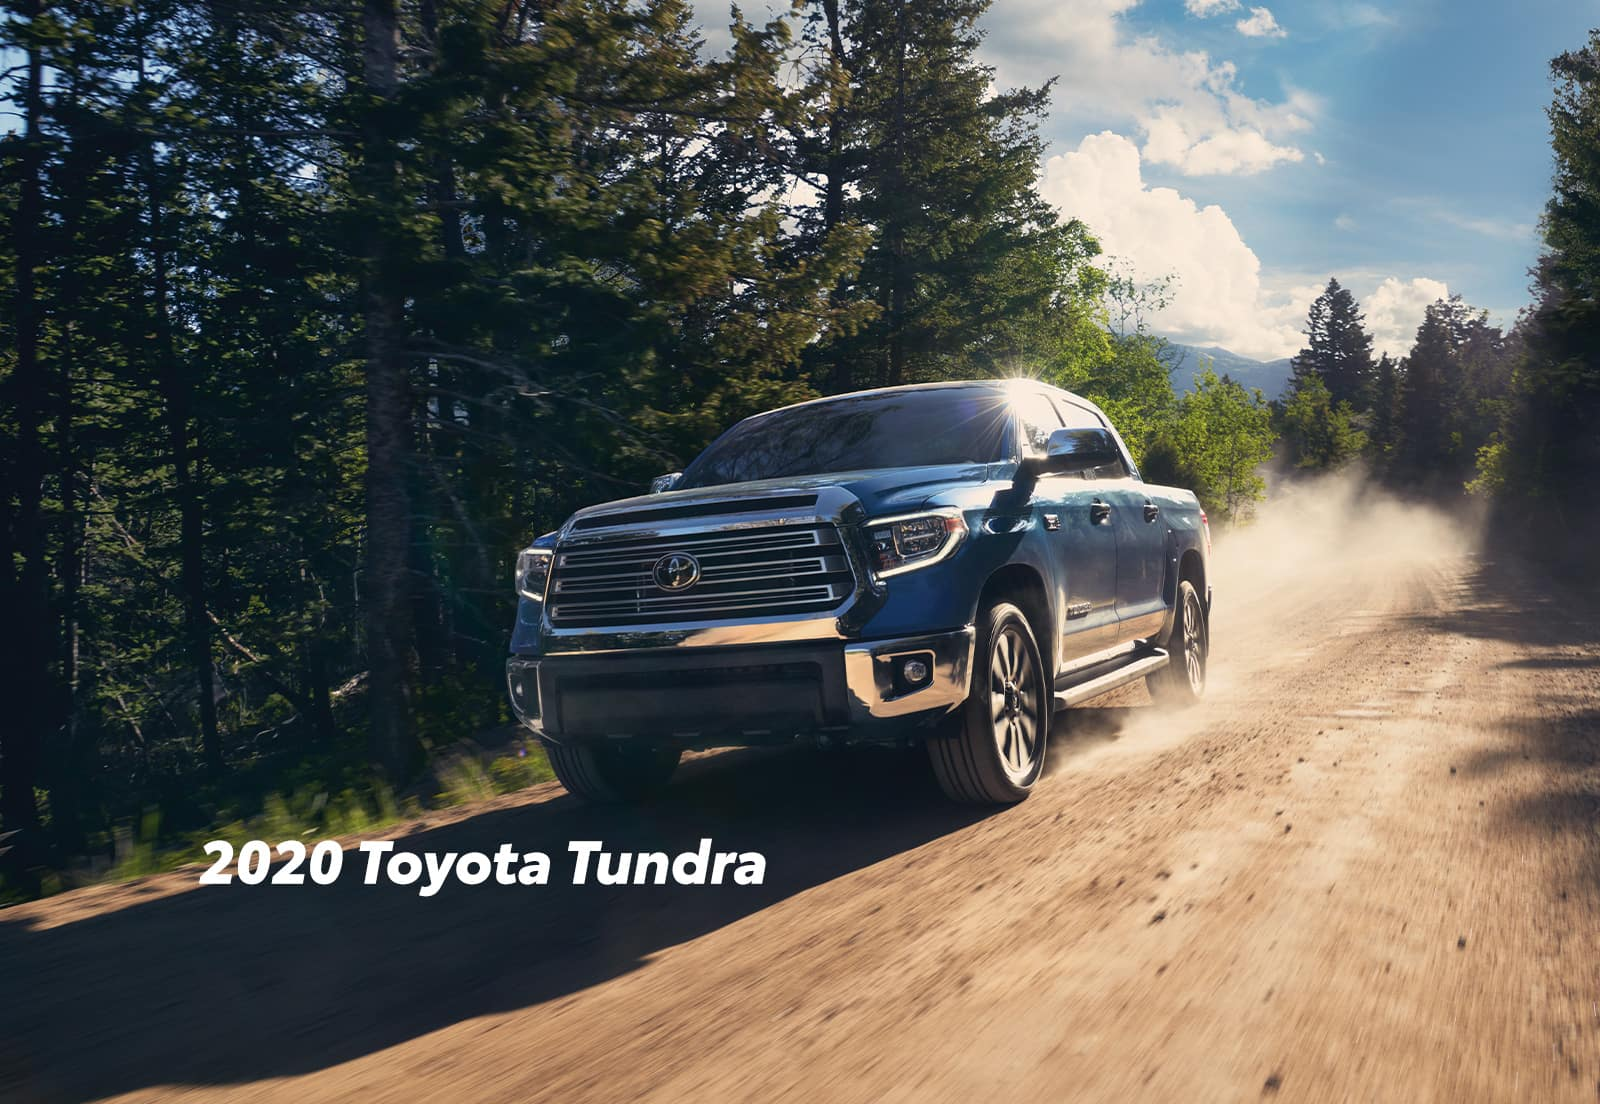 Comparison of the Toyota Tacoma vs. Tundra trucks at Lancaster Toyota of East Petersburg | 2020 Toyota Tundra running on dirt road